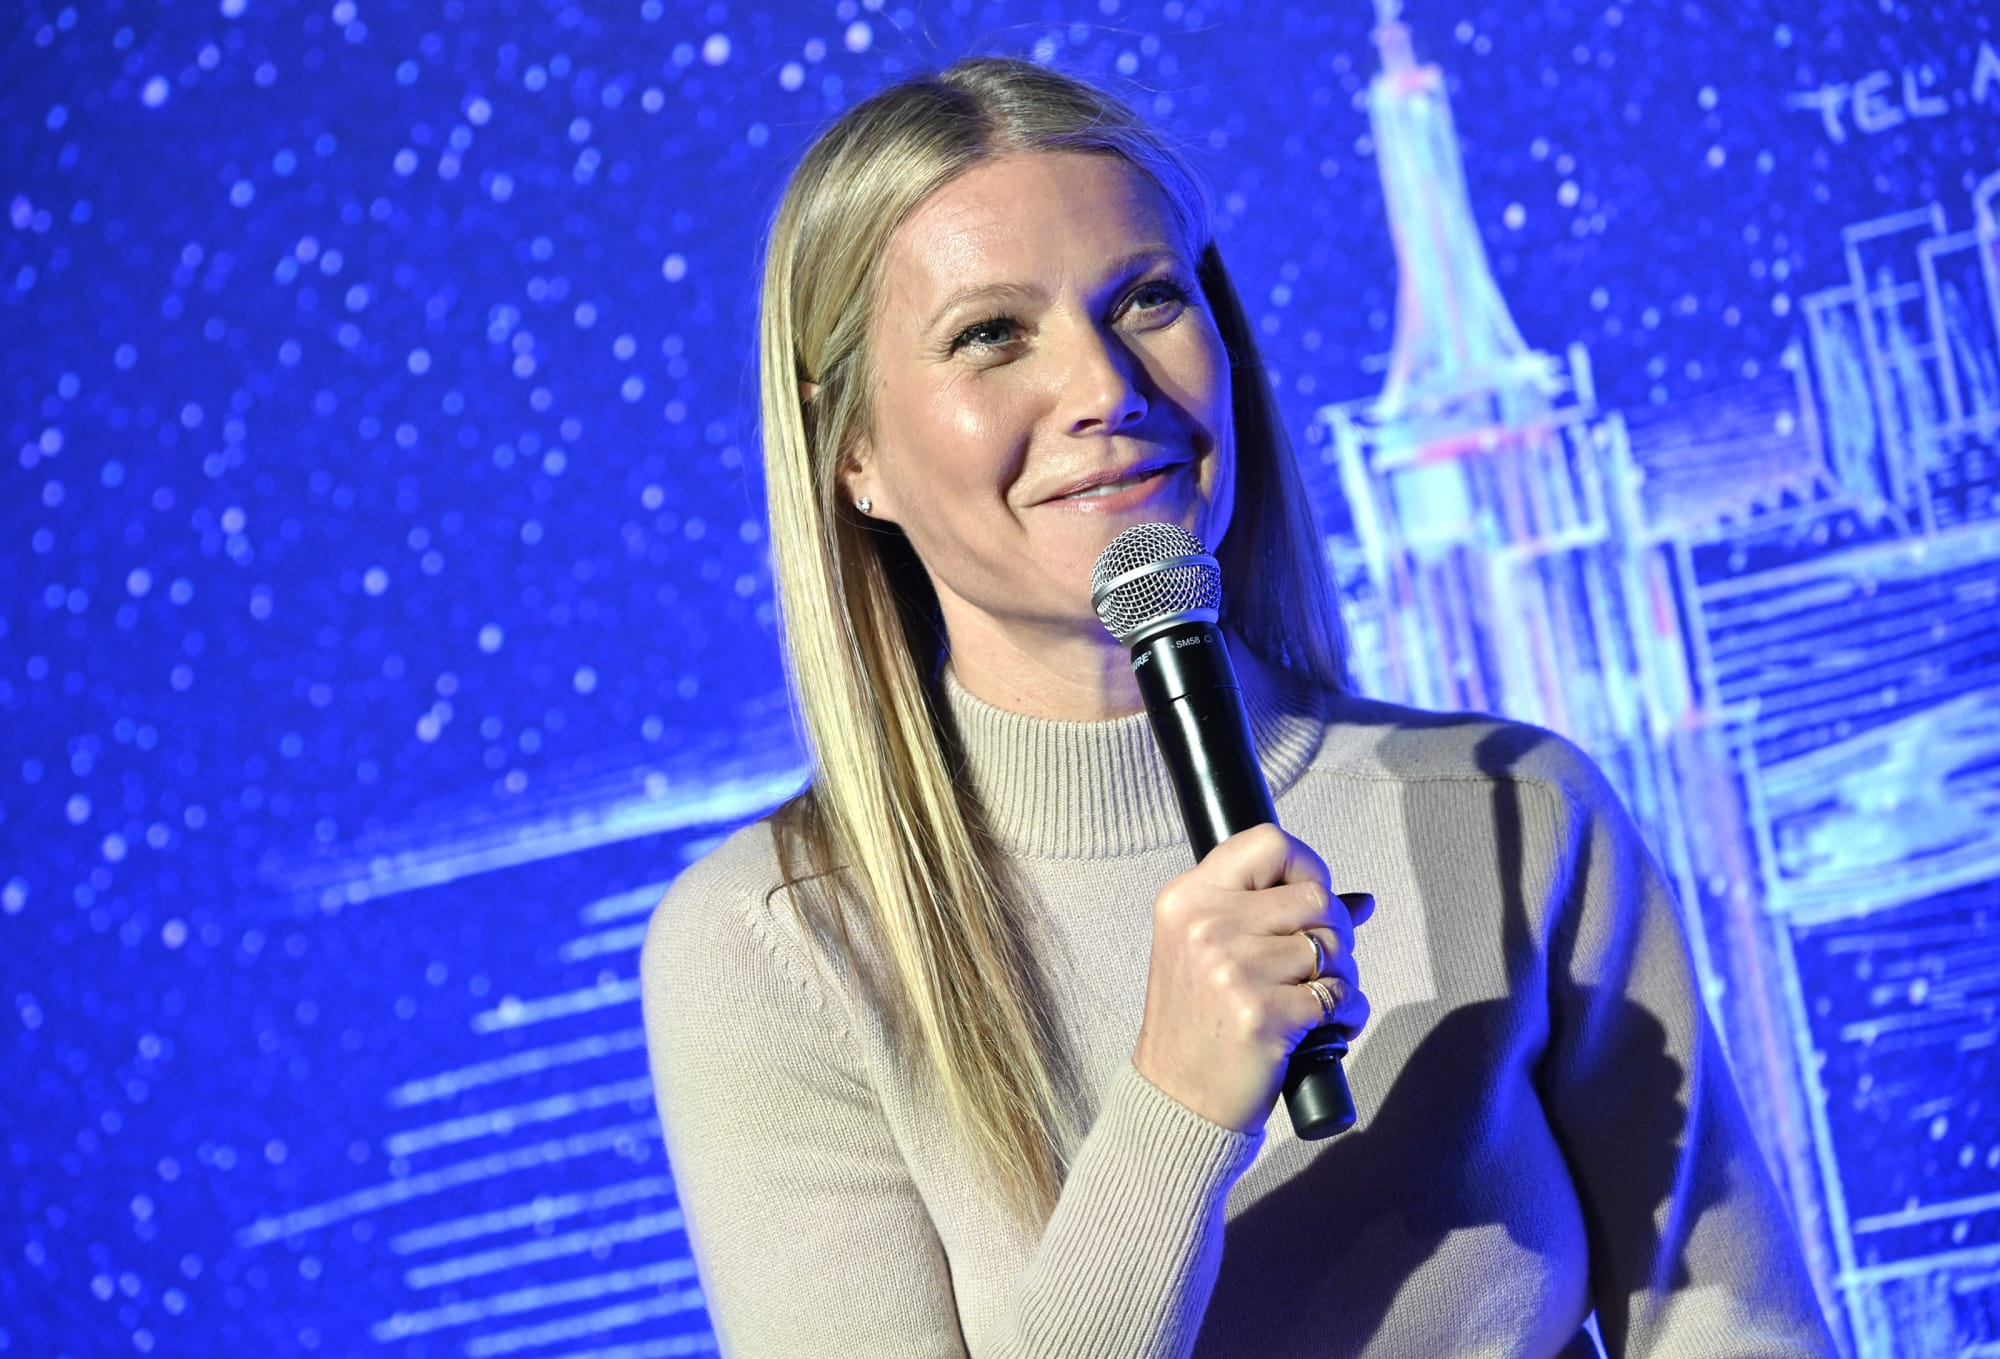 Gwyneth Paltrow opens up on difficulties behind co-parenting with Chris Martin